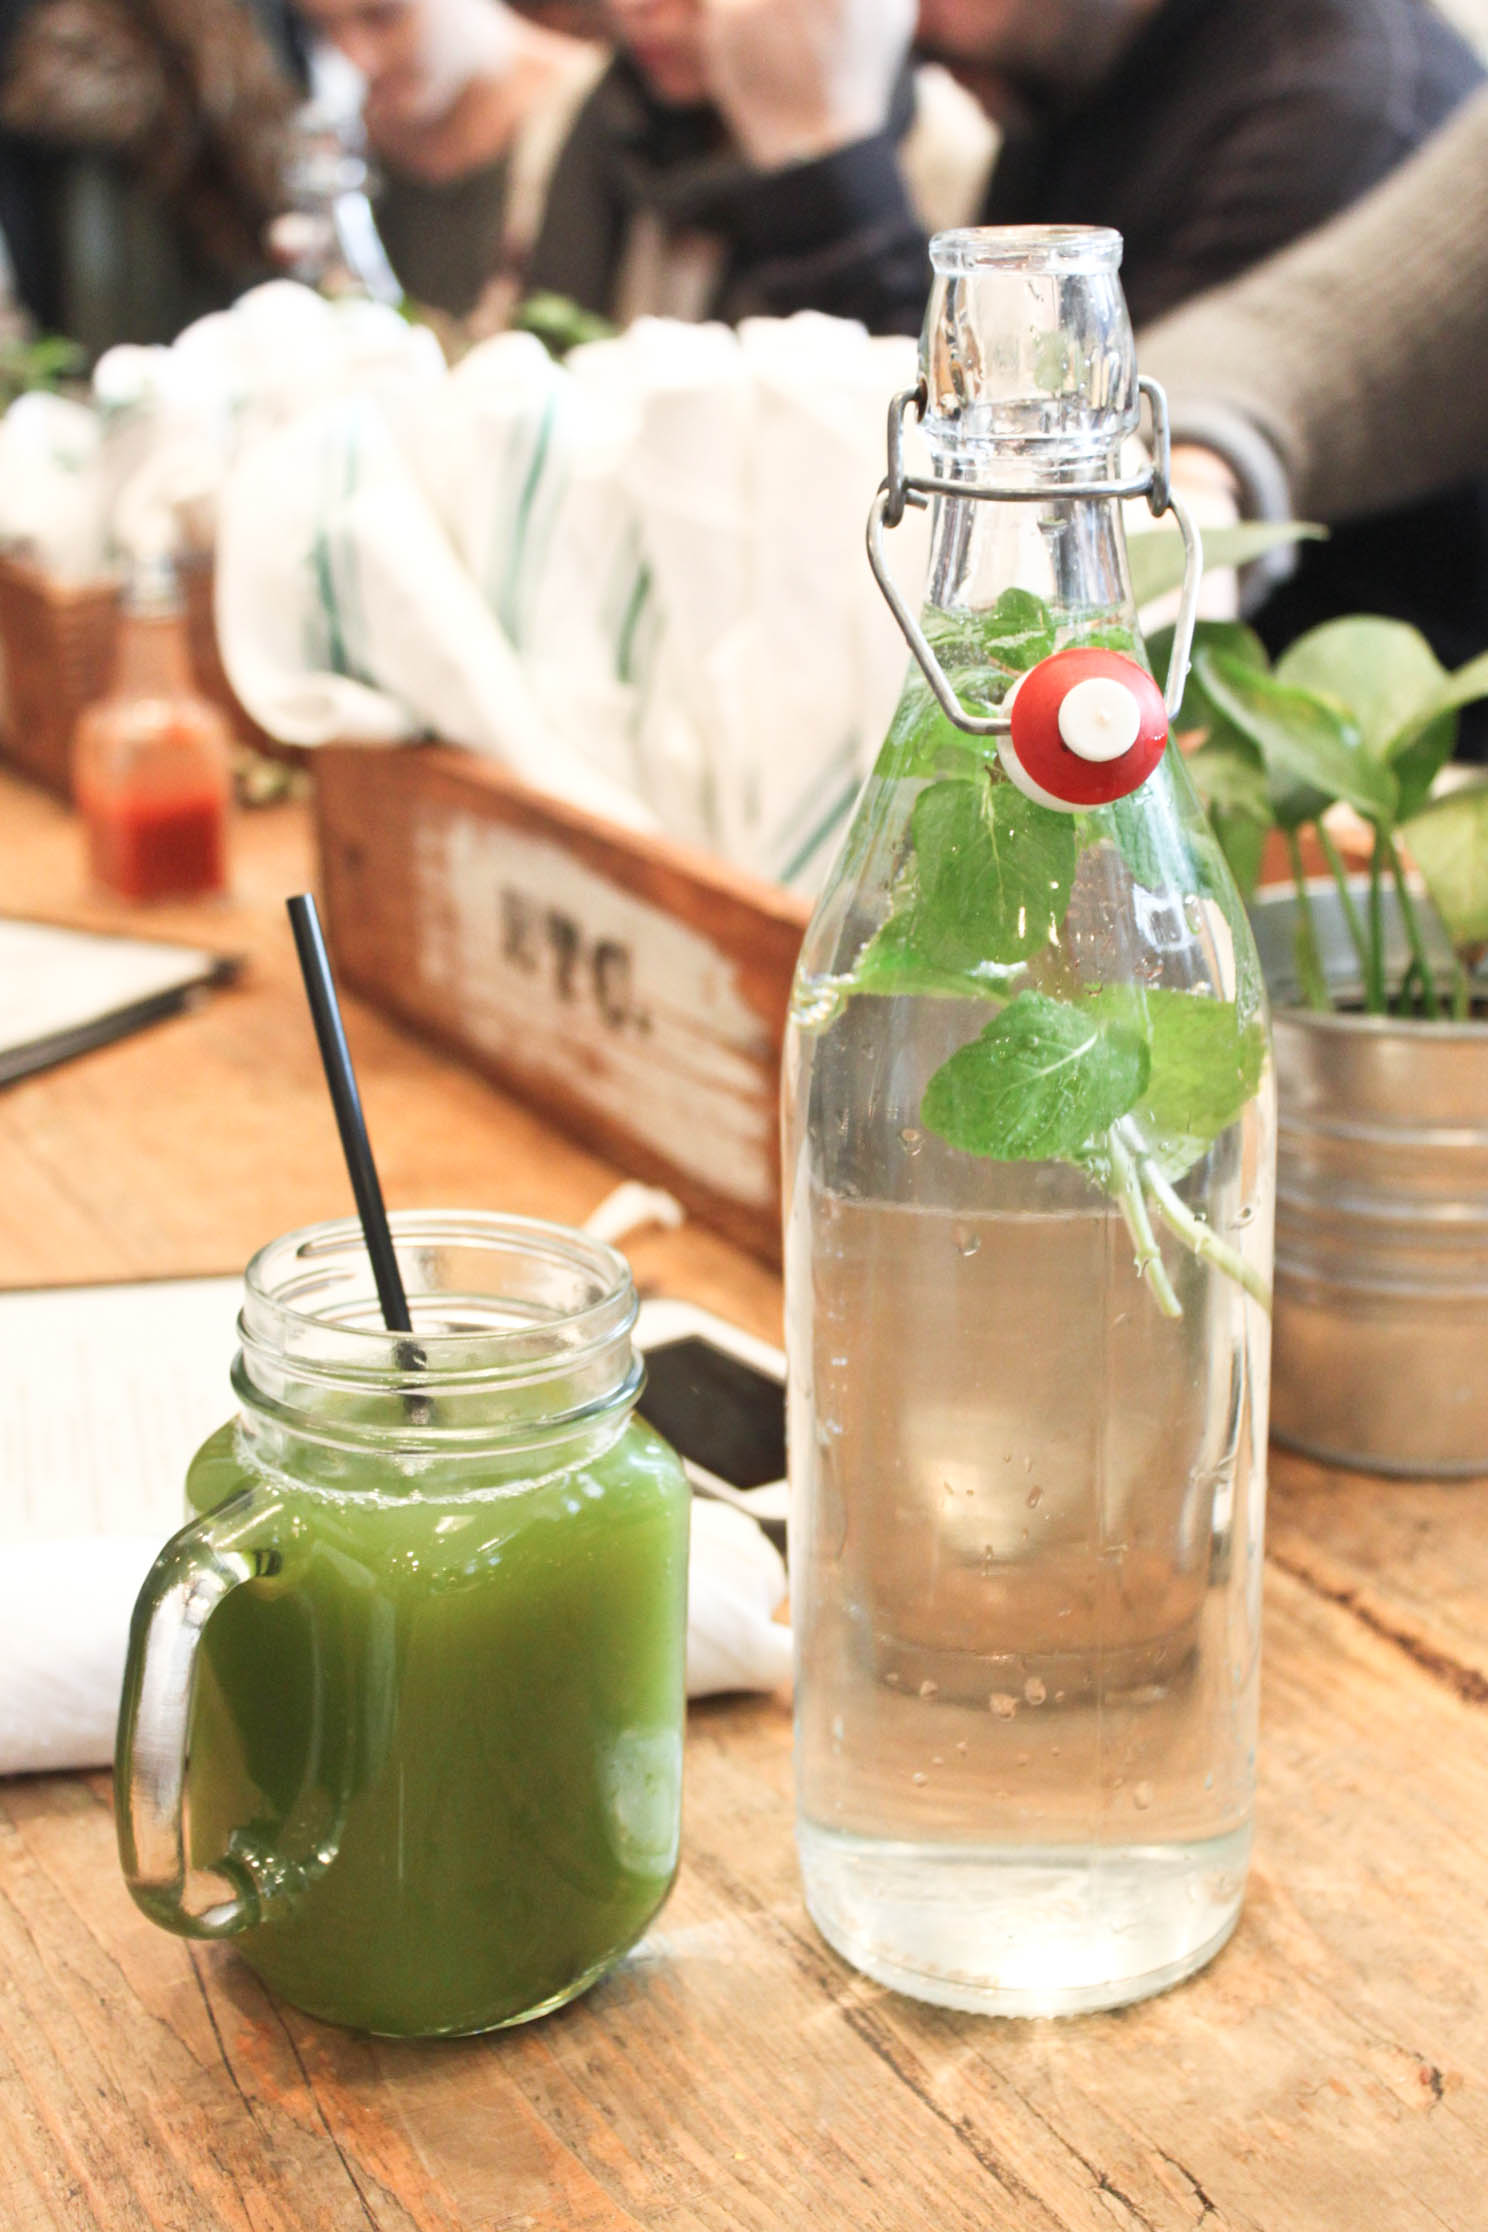 Try a fresh pressed juice and enjoy mint infused water.